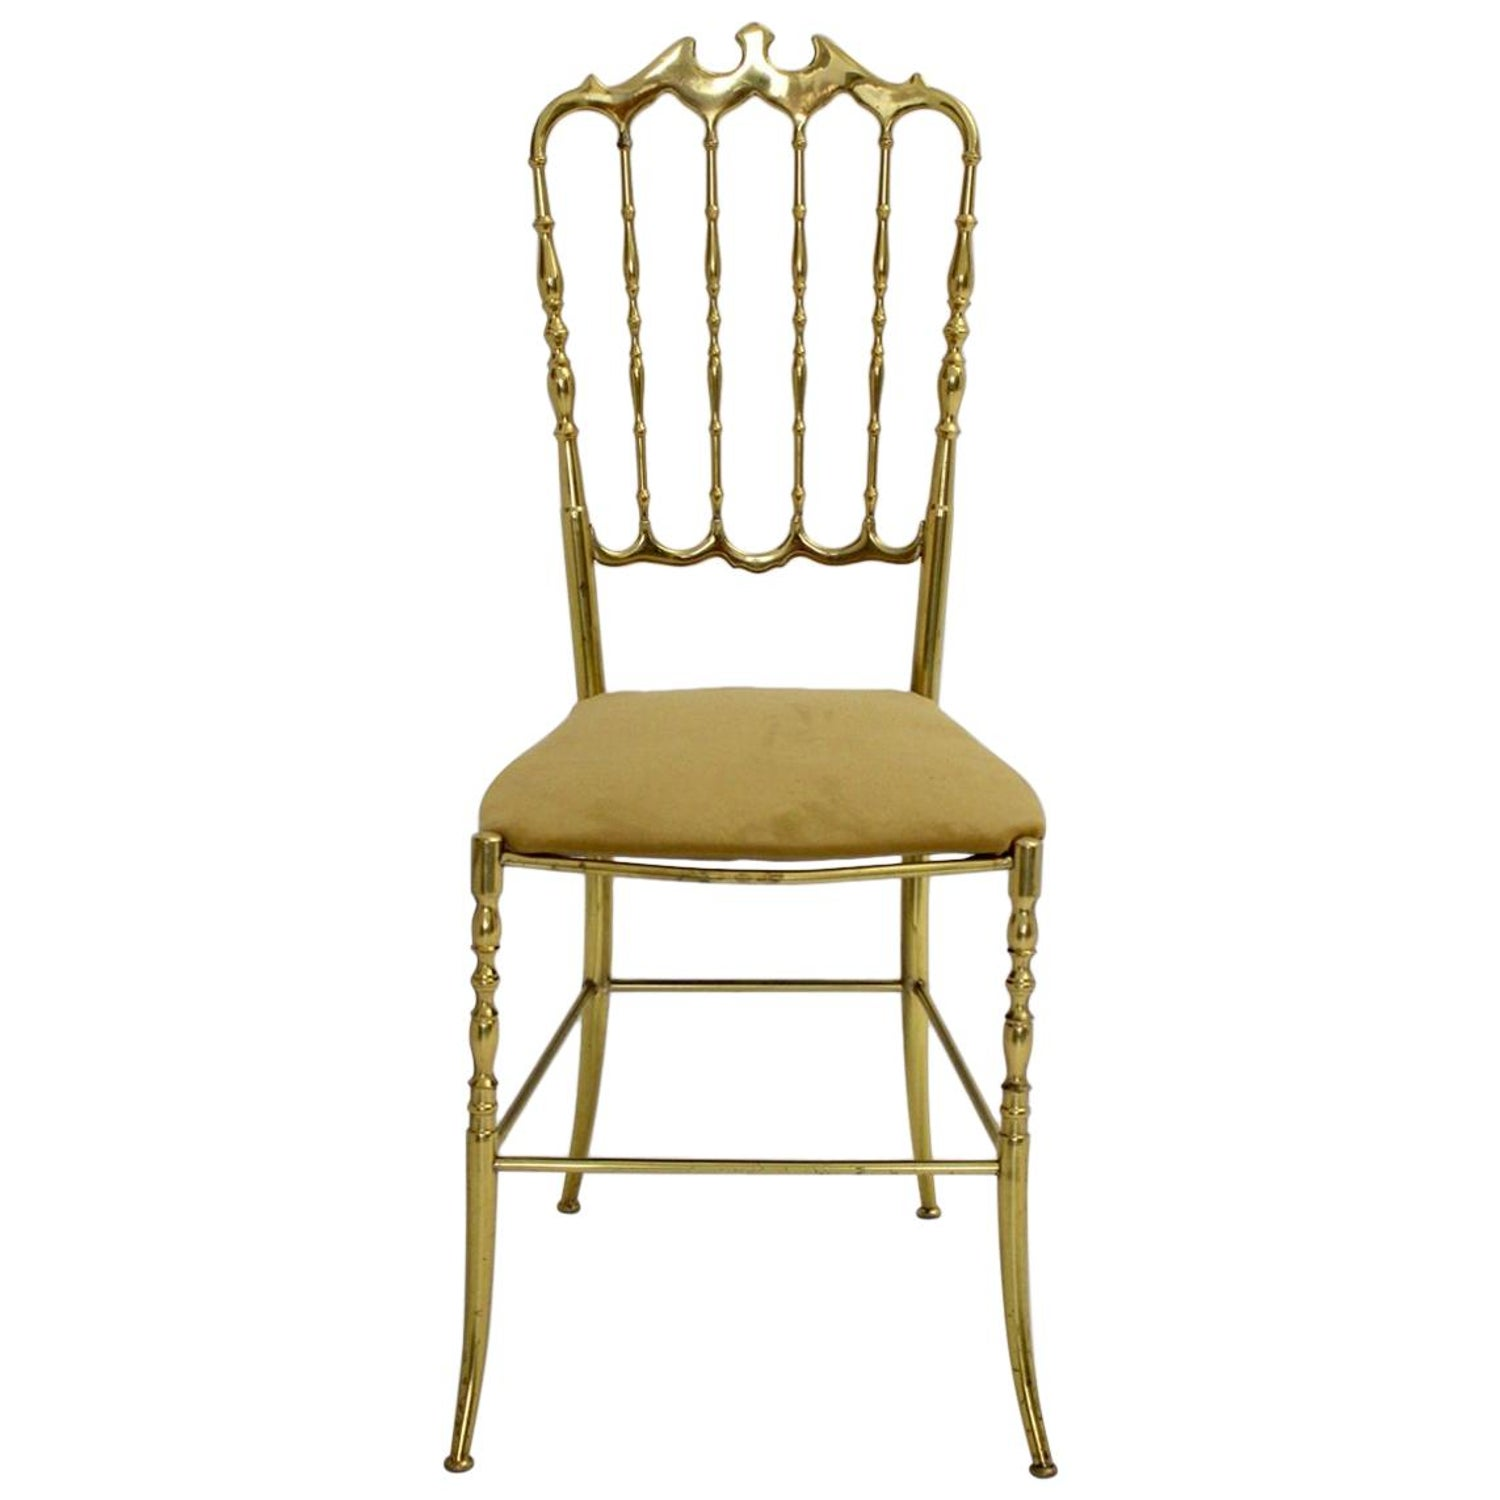 Mid century modern vintage brass chiavari side chair 1950s italy for sale at 1stdibs